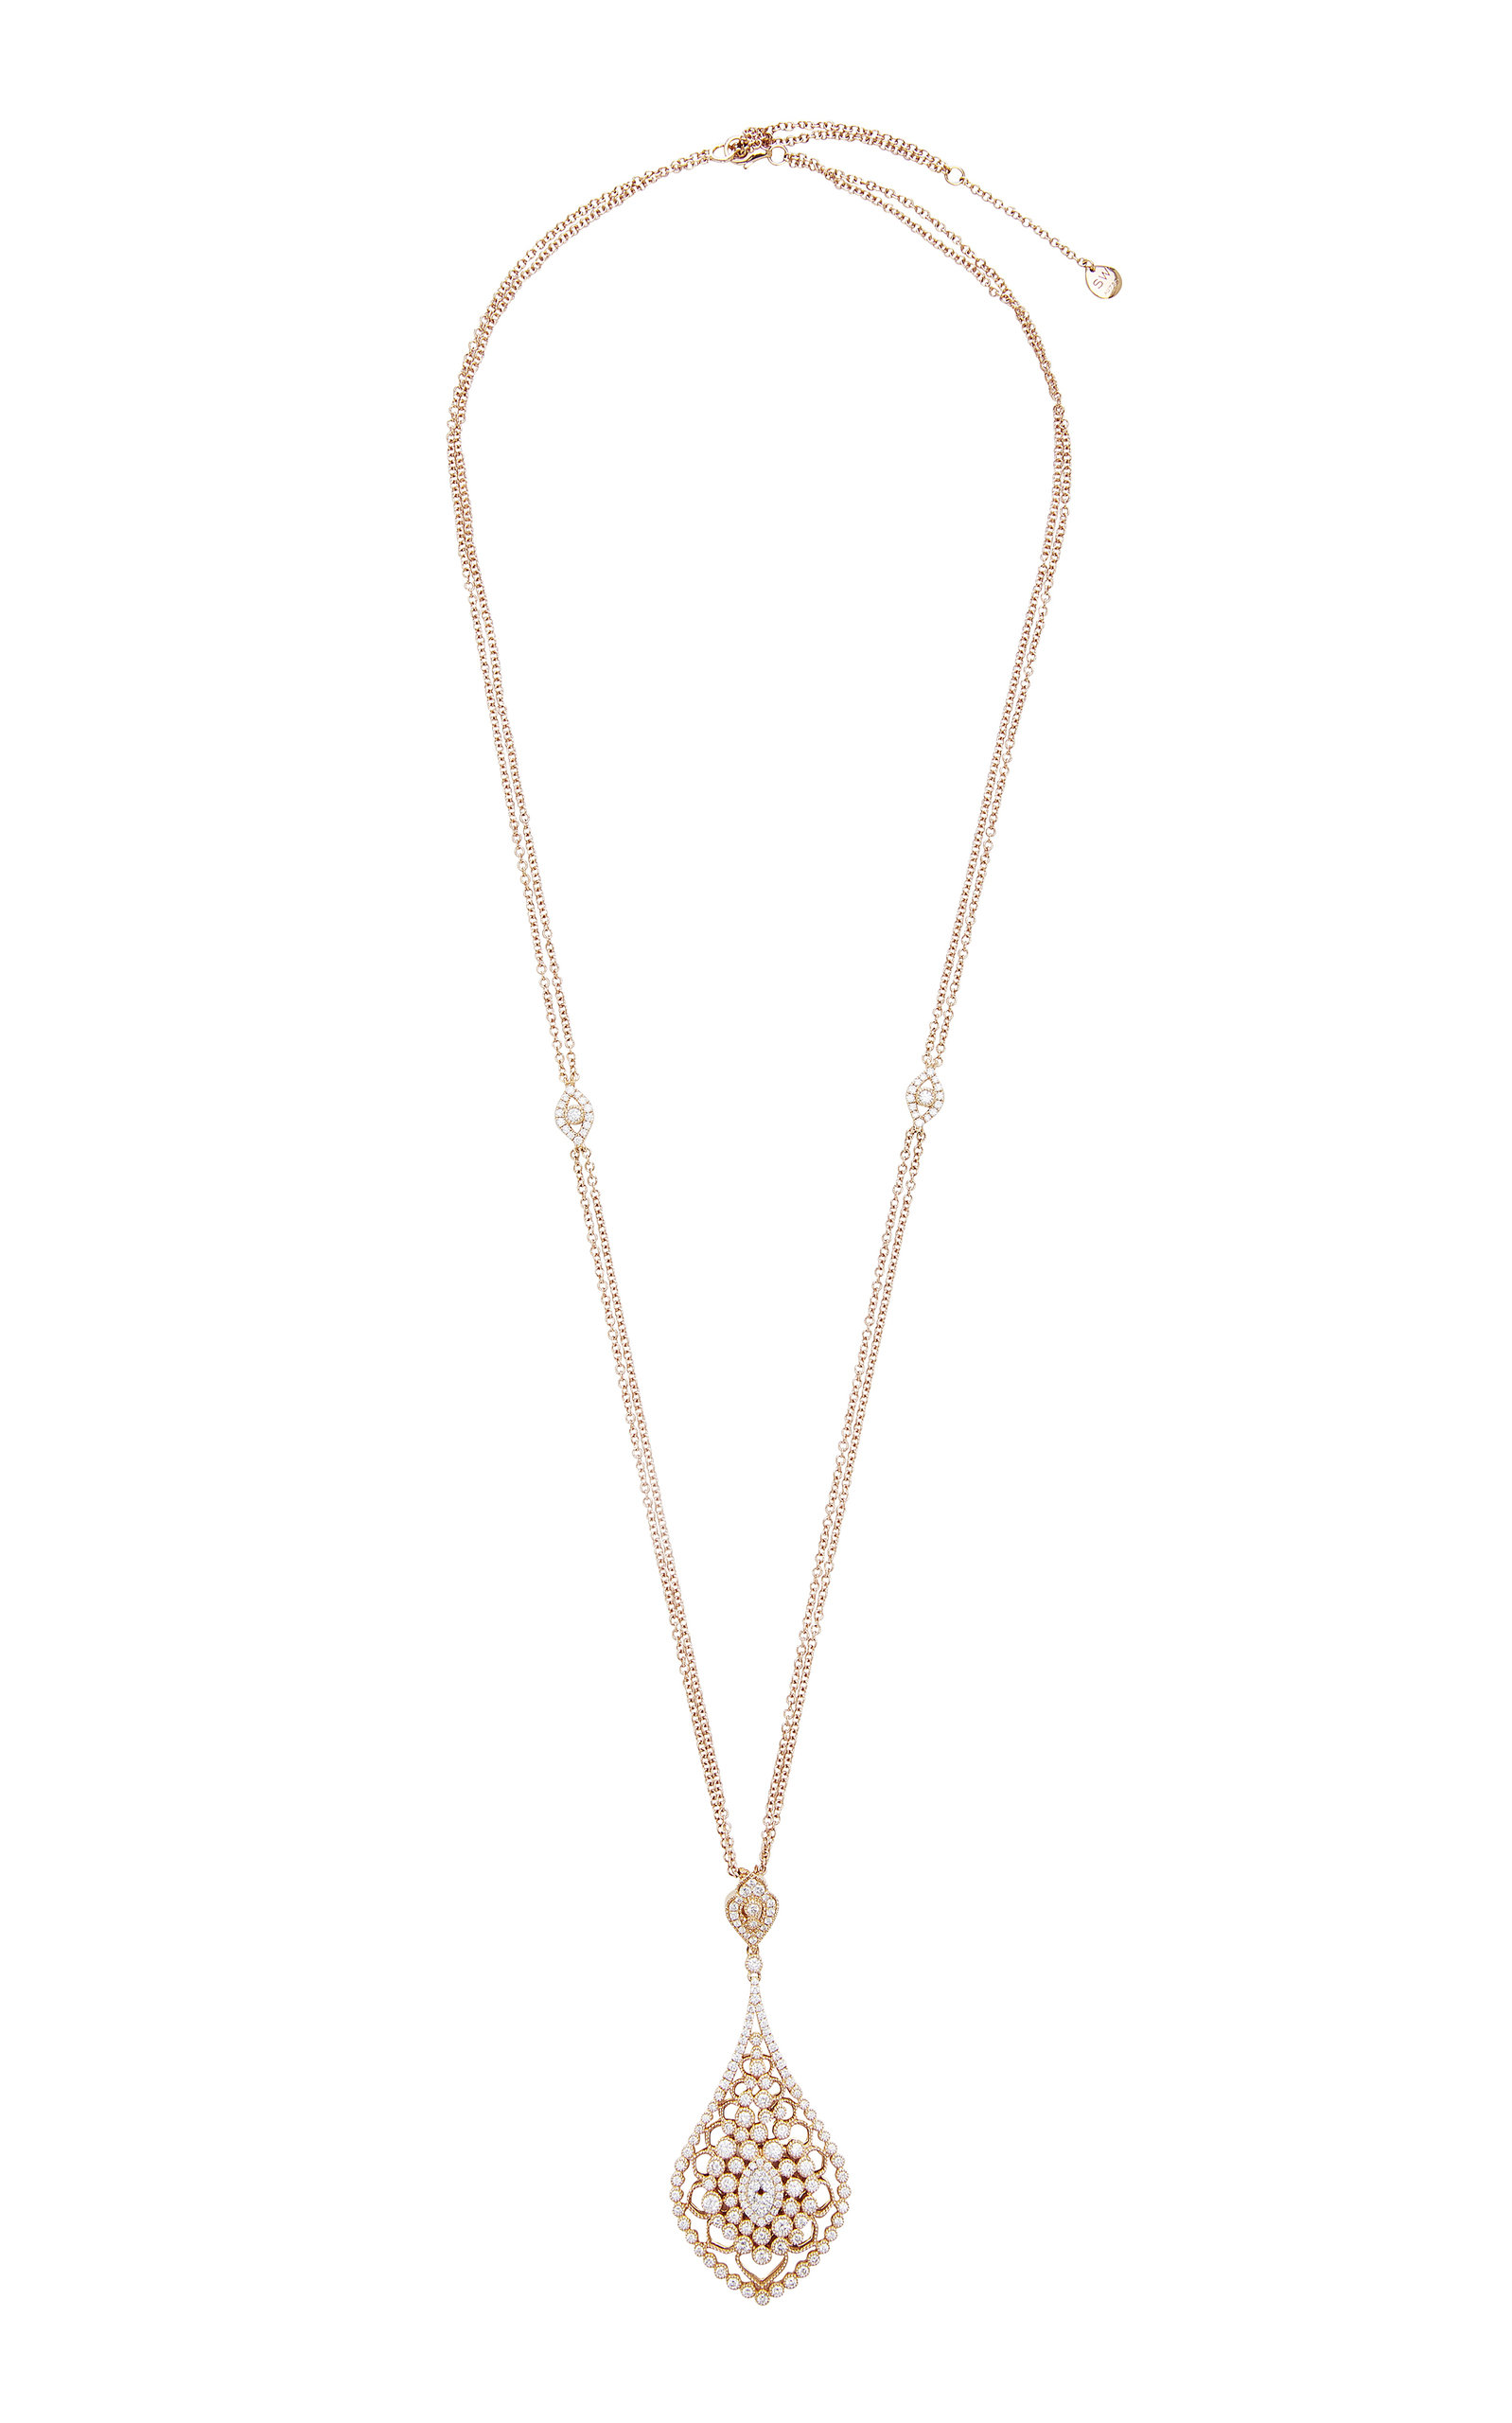 SARA WEINSTOCK BRUT BEZEL REGAL PENDANT NECKLACE